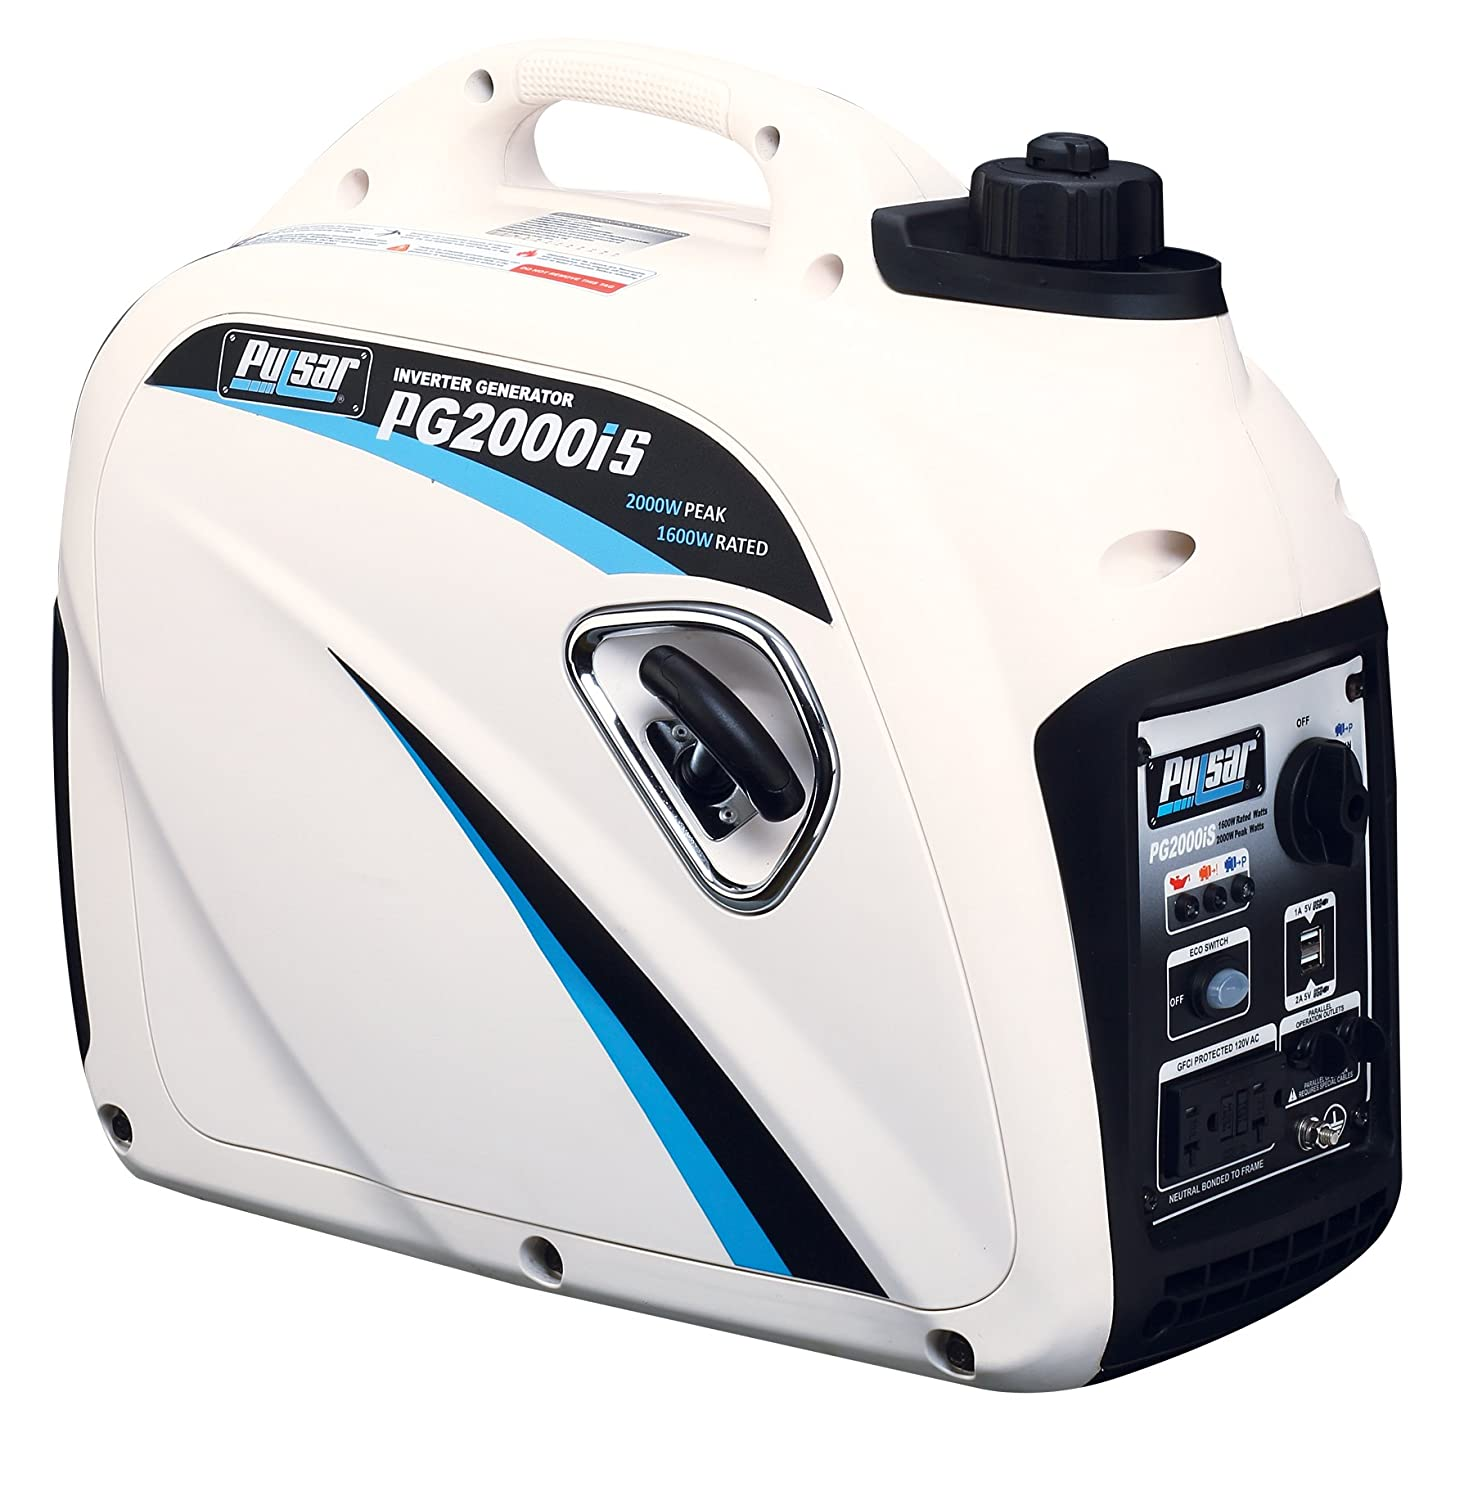 Amazon Pulsar PG2000iS 2000W Peak 1600W Rated Portable Gas